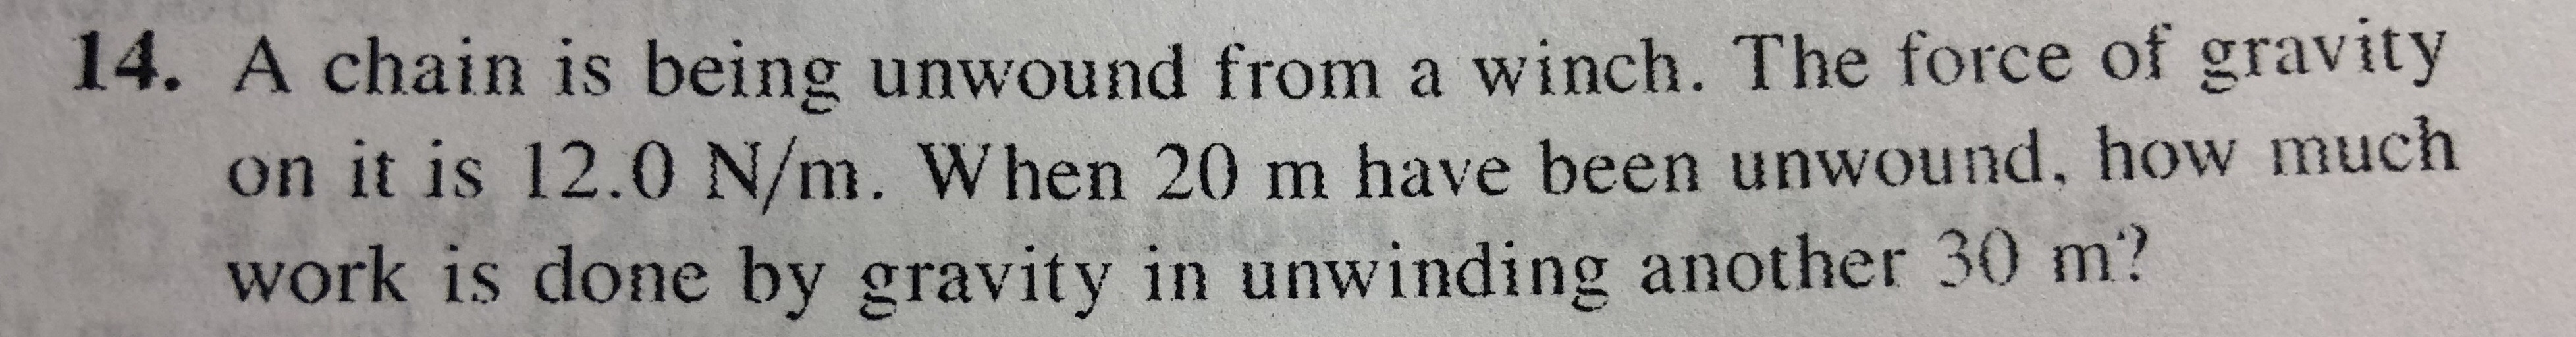 14. A chain is being unwound from a winch. The force of gravity on it is 12.0 N/m. When 20 m have been unwound. how much work is done by gravity in unwinding another 30 m?